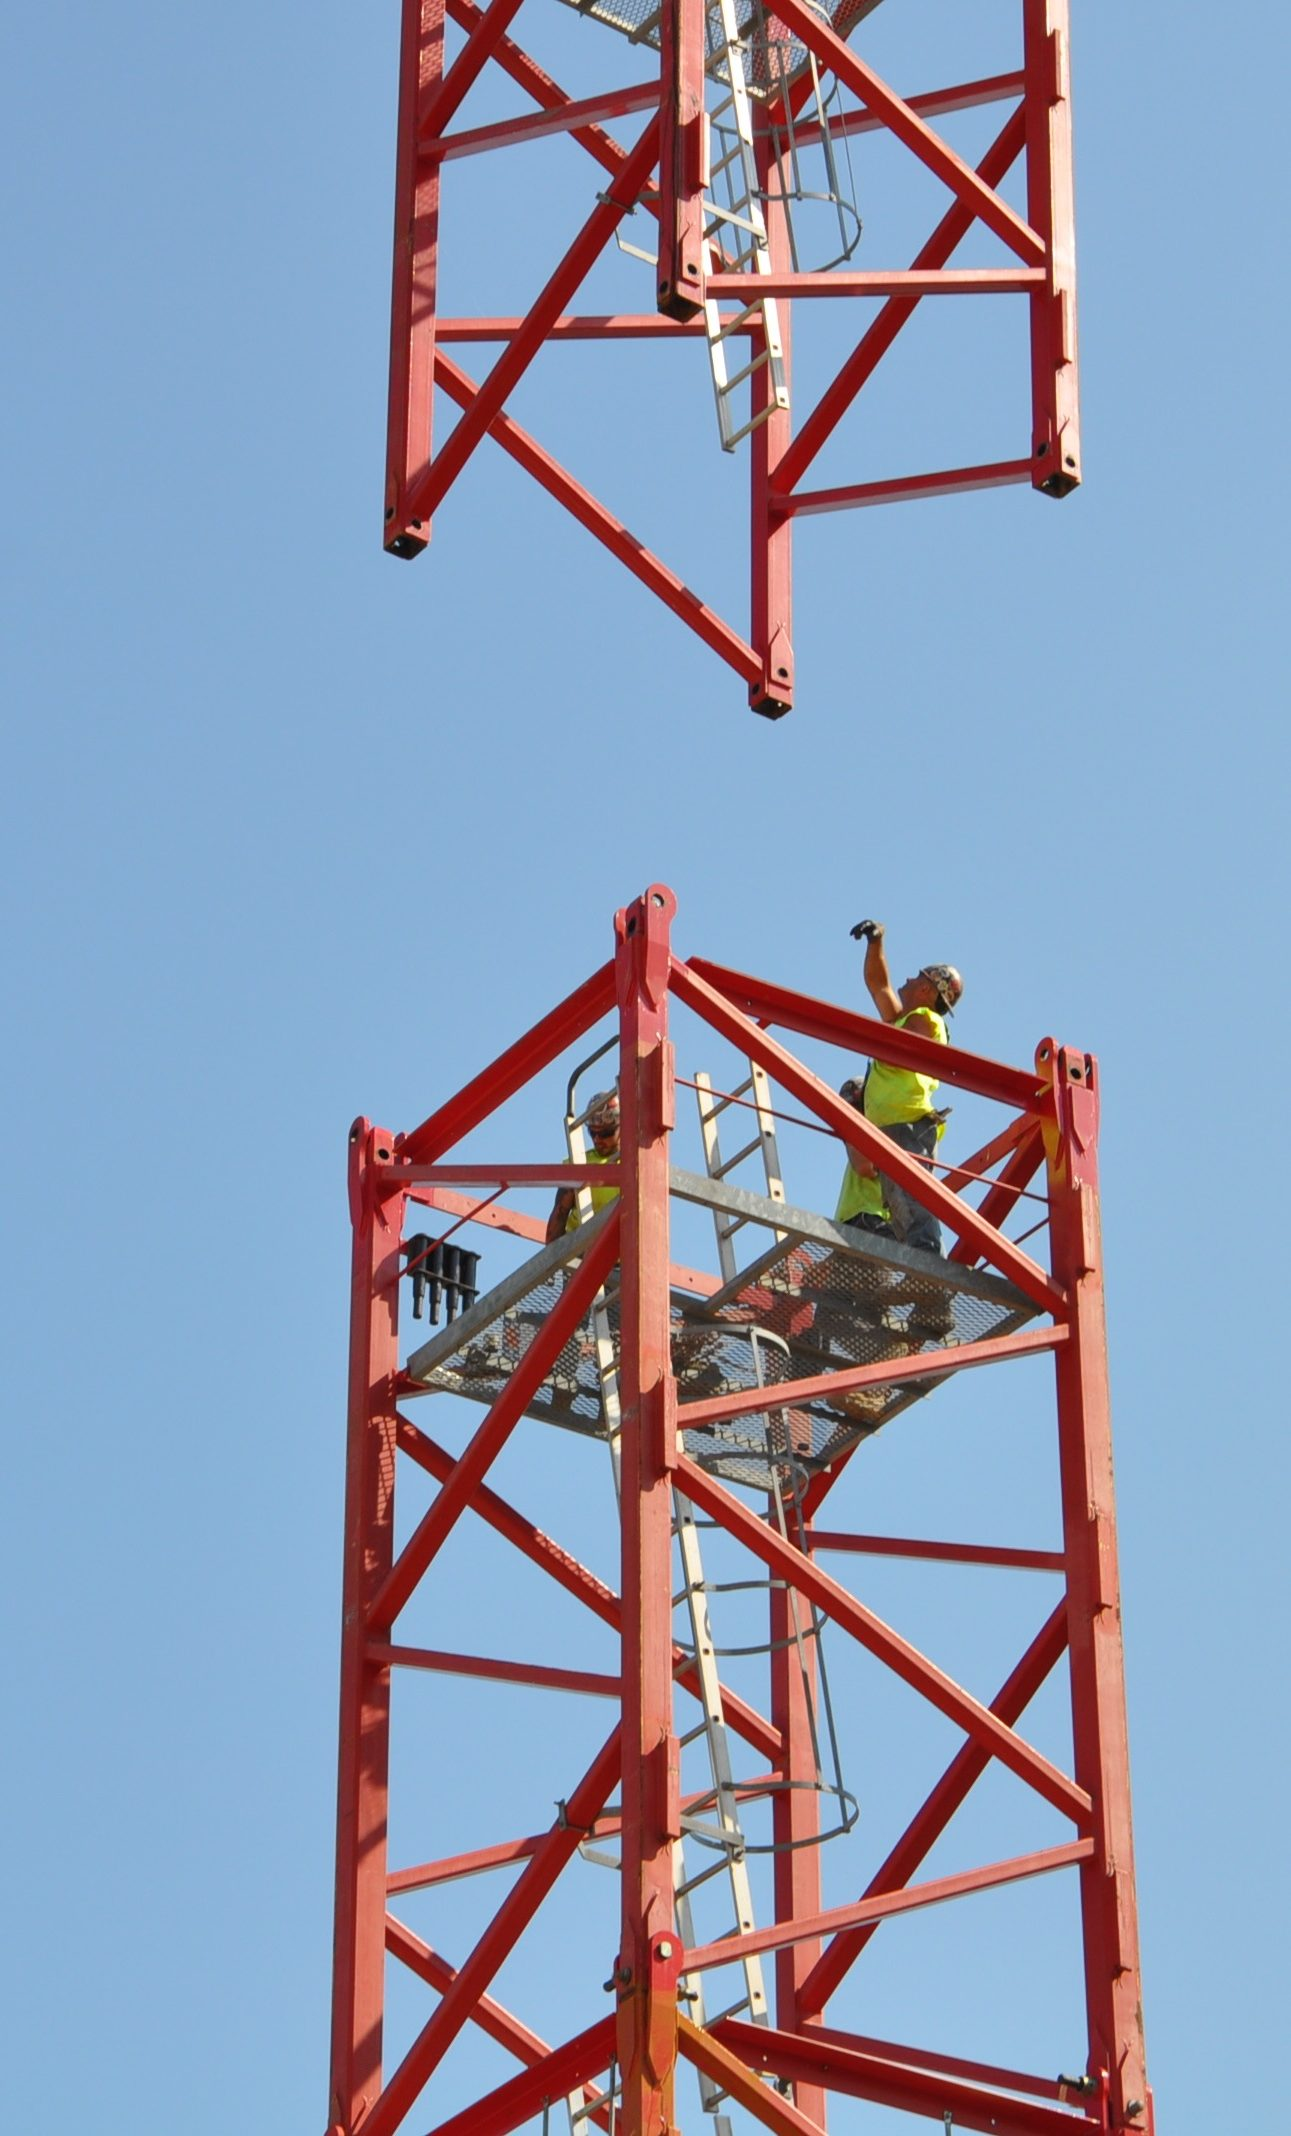 crane assembly on construction site